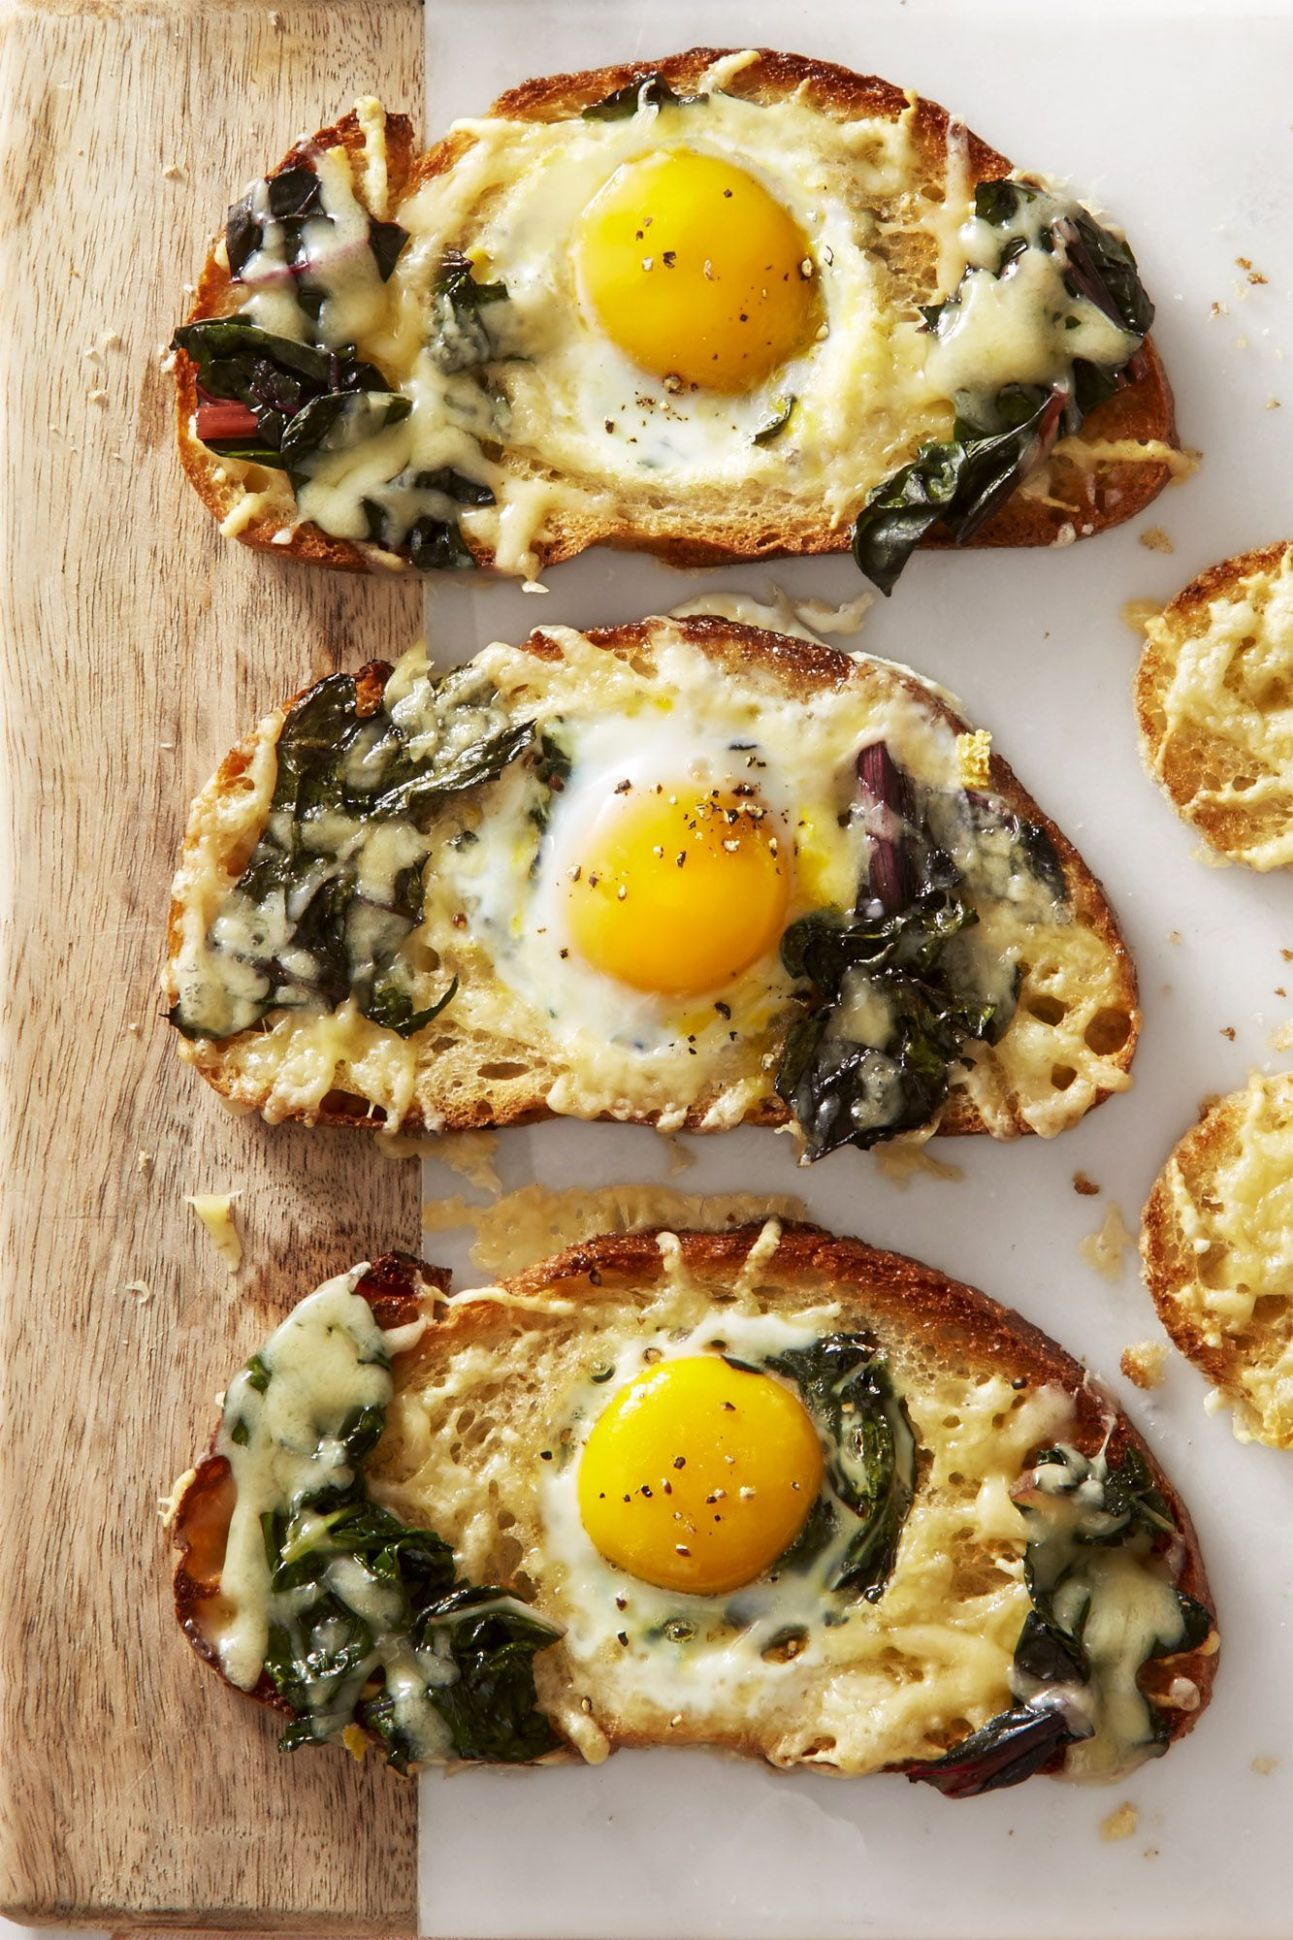 8+ Easy Egg Recipes - Ways to Cook Eggs for Breakfast - Egg Recipes Quick